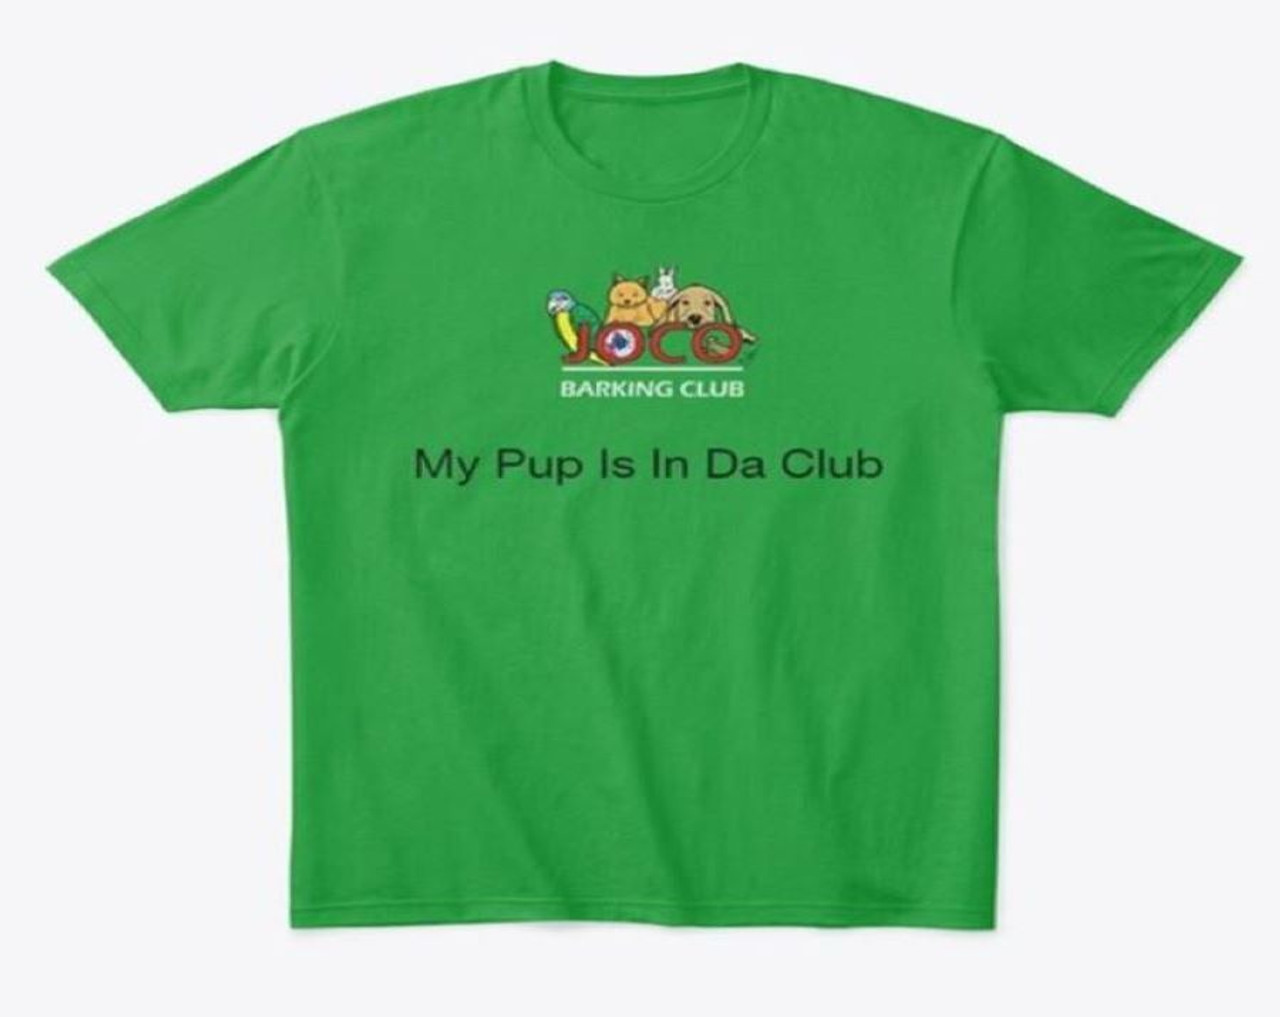 personalized green tee shirt with logo and My Pup Is In Da Club saying